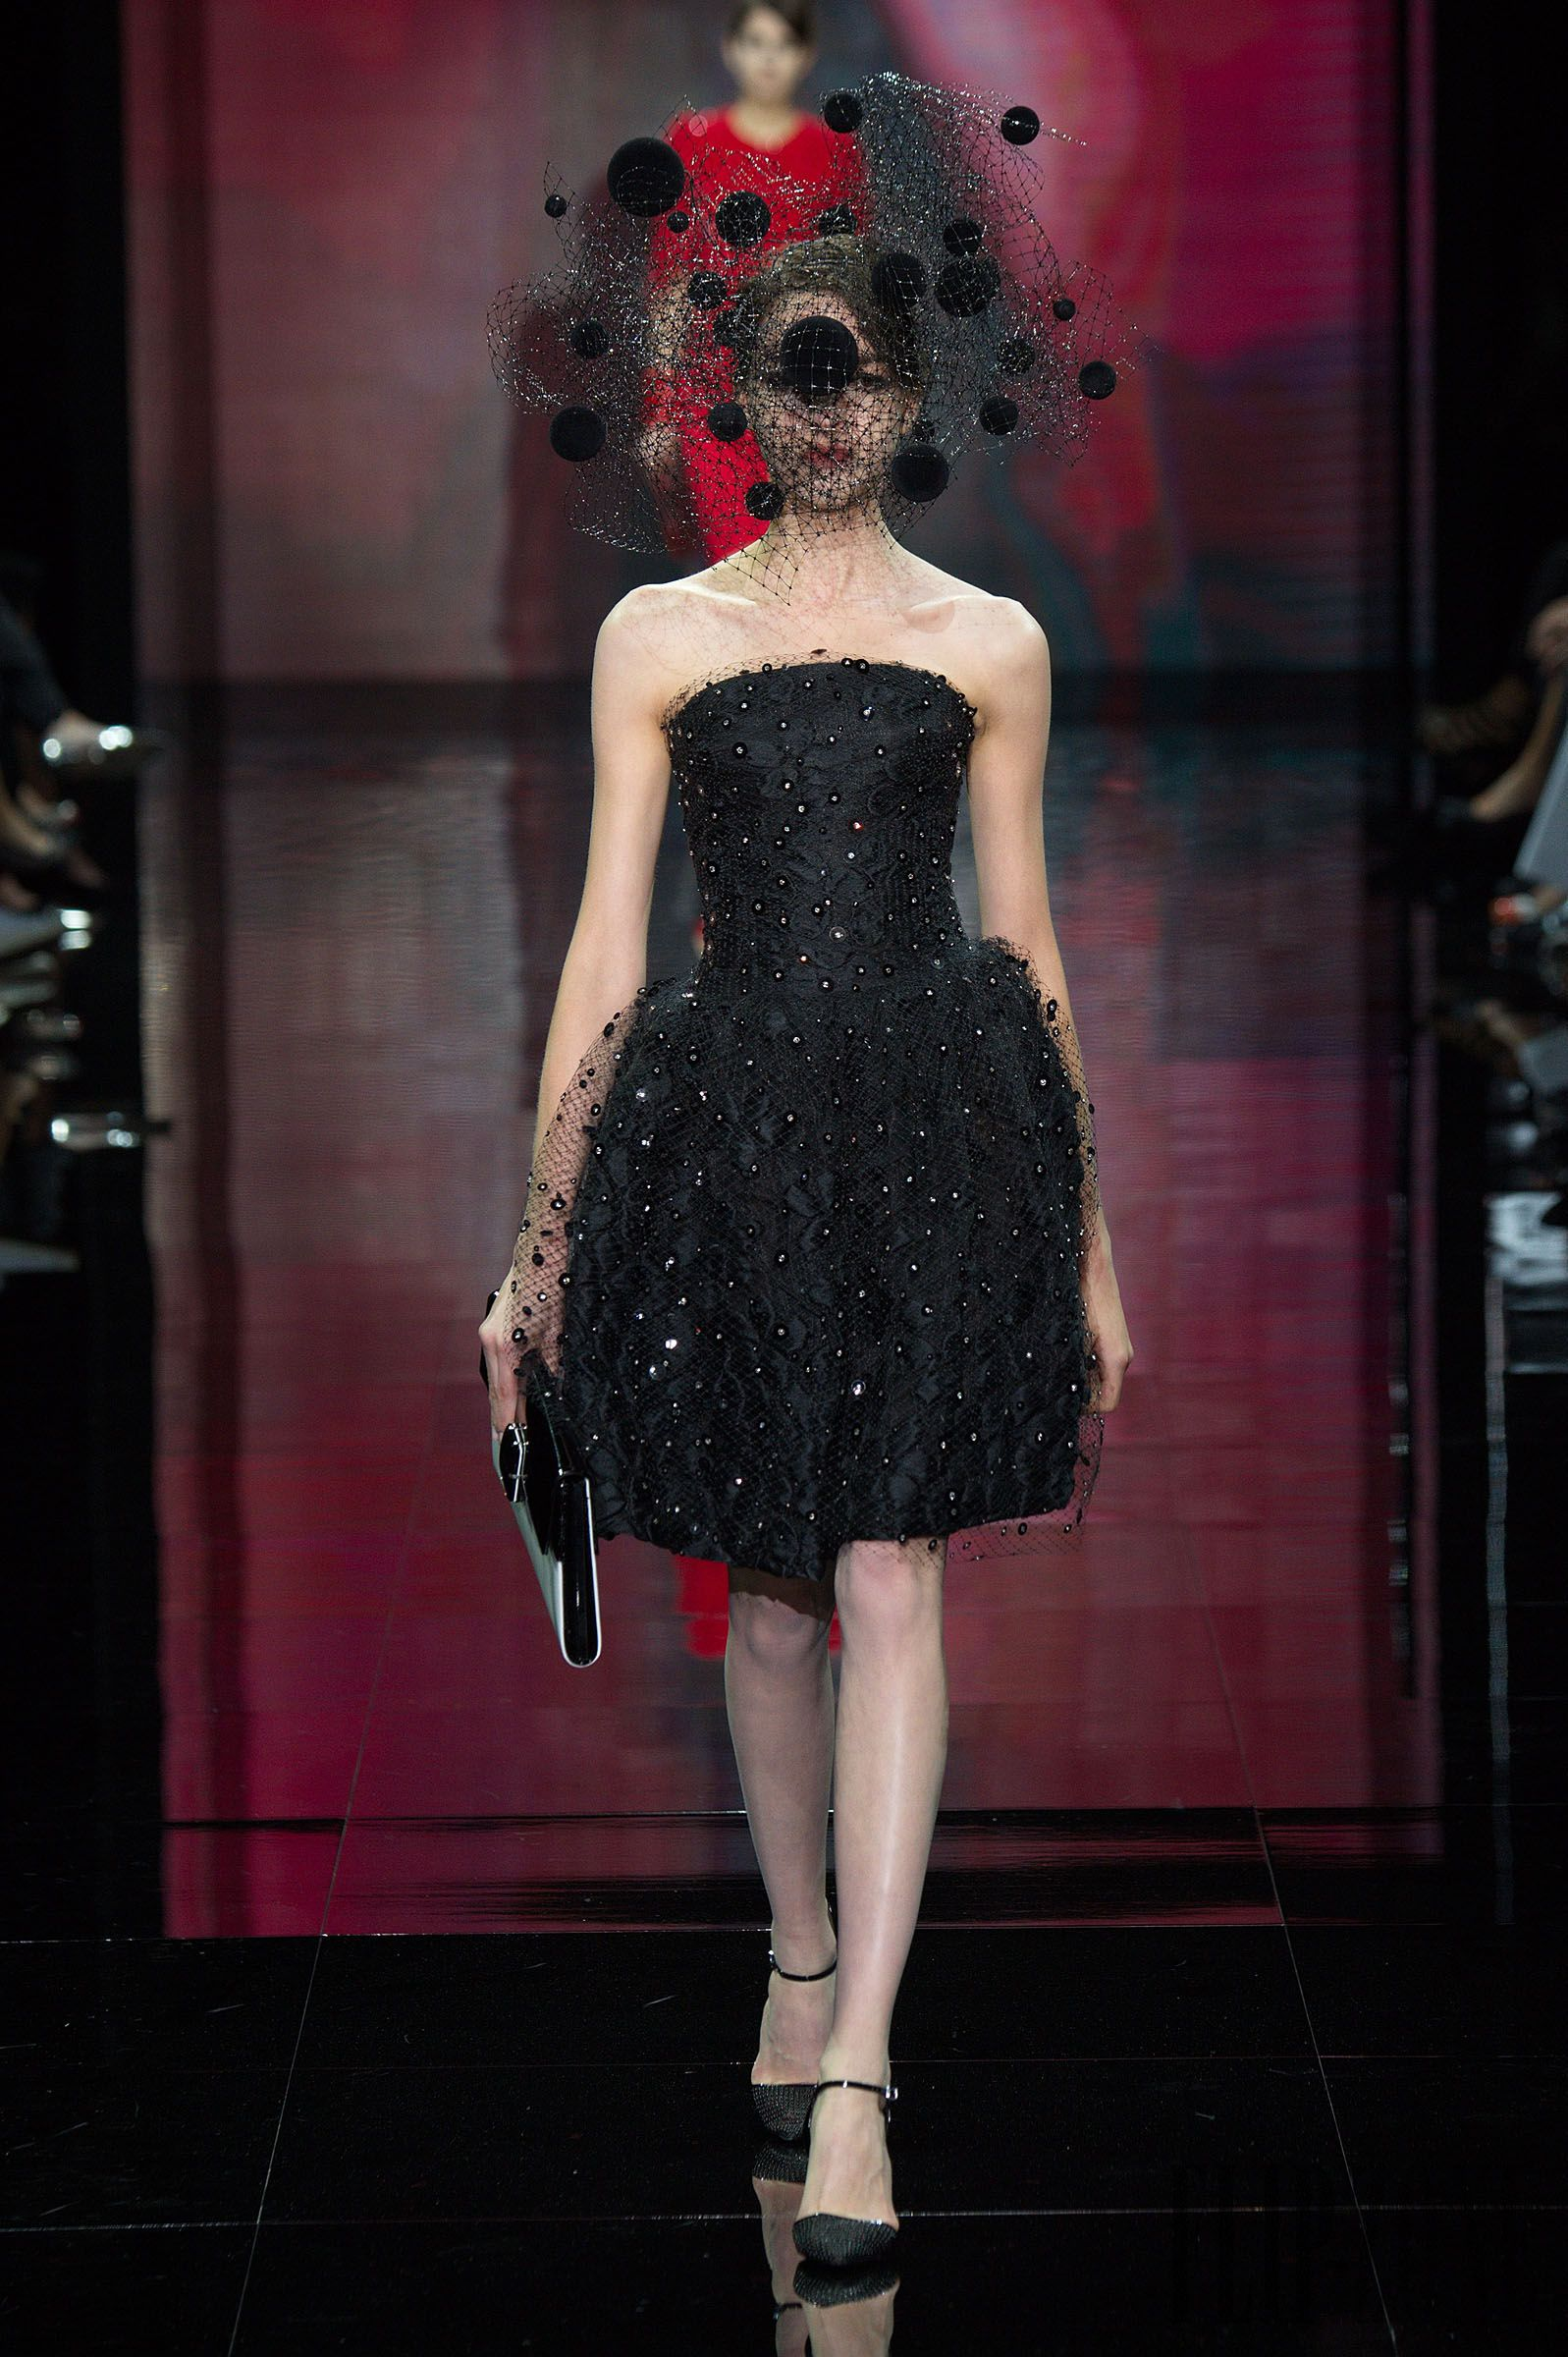 Armani Privé Fall-winter 2014-2015 - Couture - http://www.flip-zone.net/fashion/couture-1/fashion-houses/armani-prive-4802 - ©PixelFormula